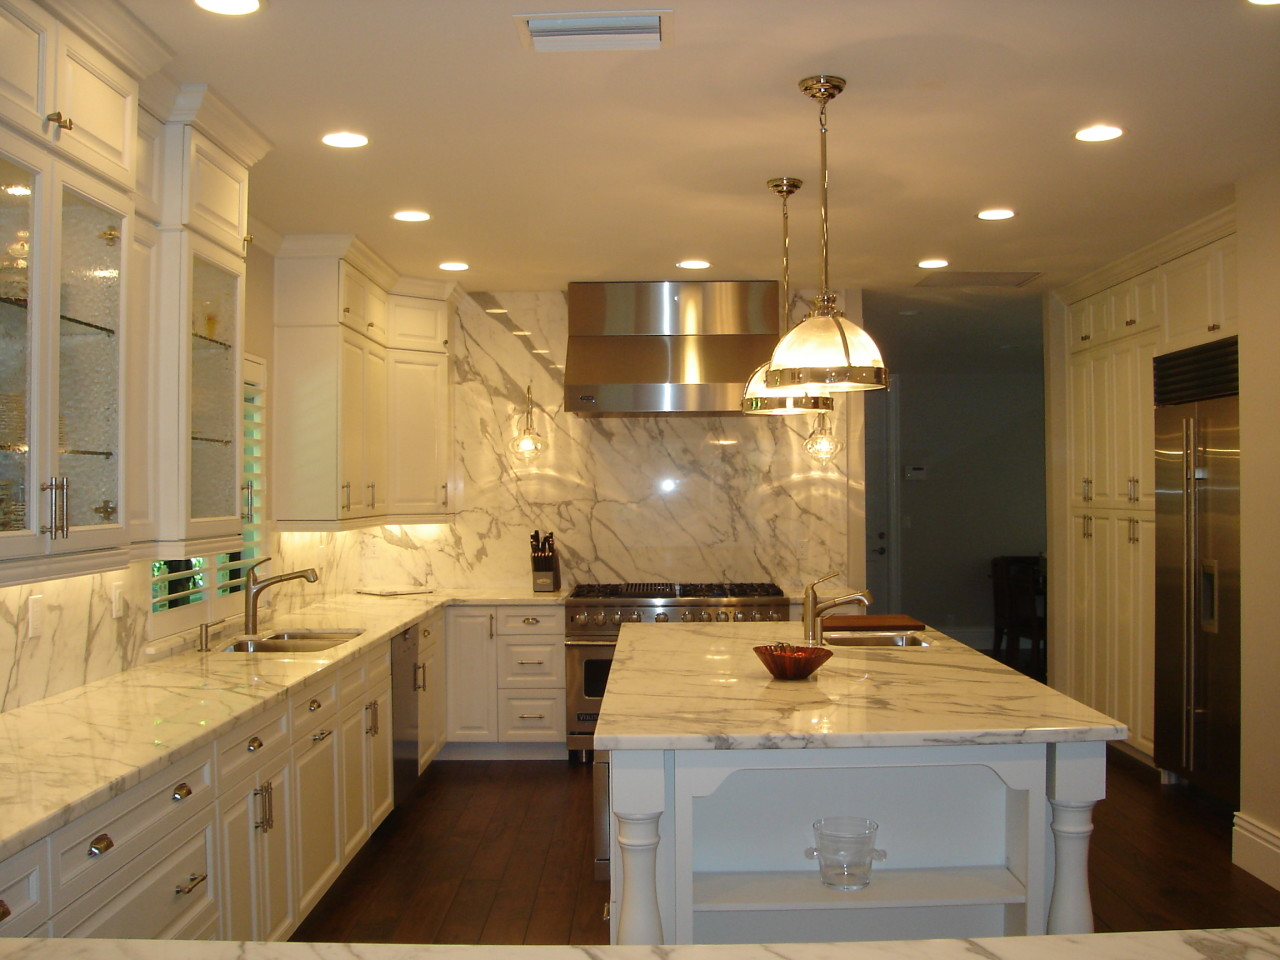 Transitional kitchen design bath kitchen creations for Kitchen style design